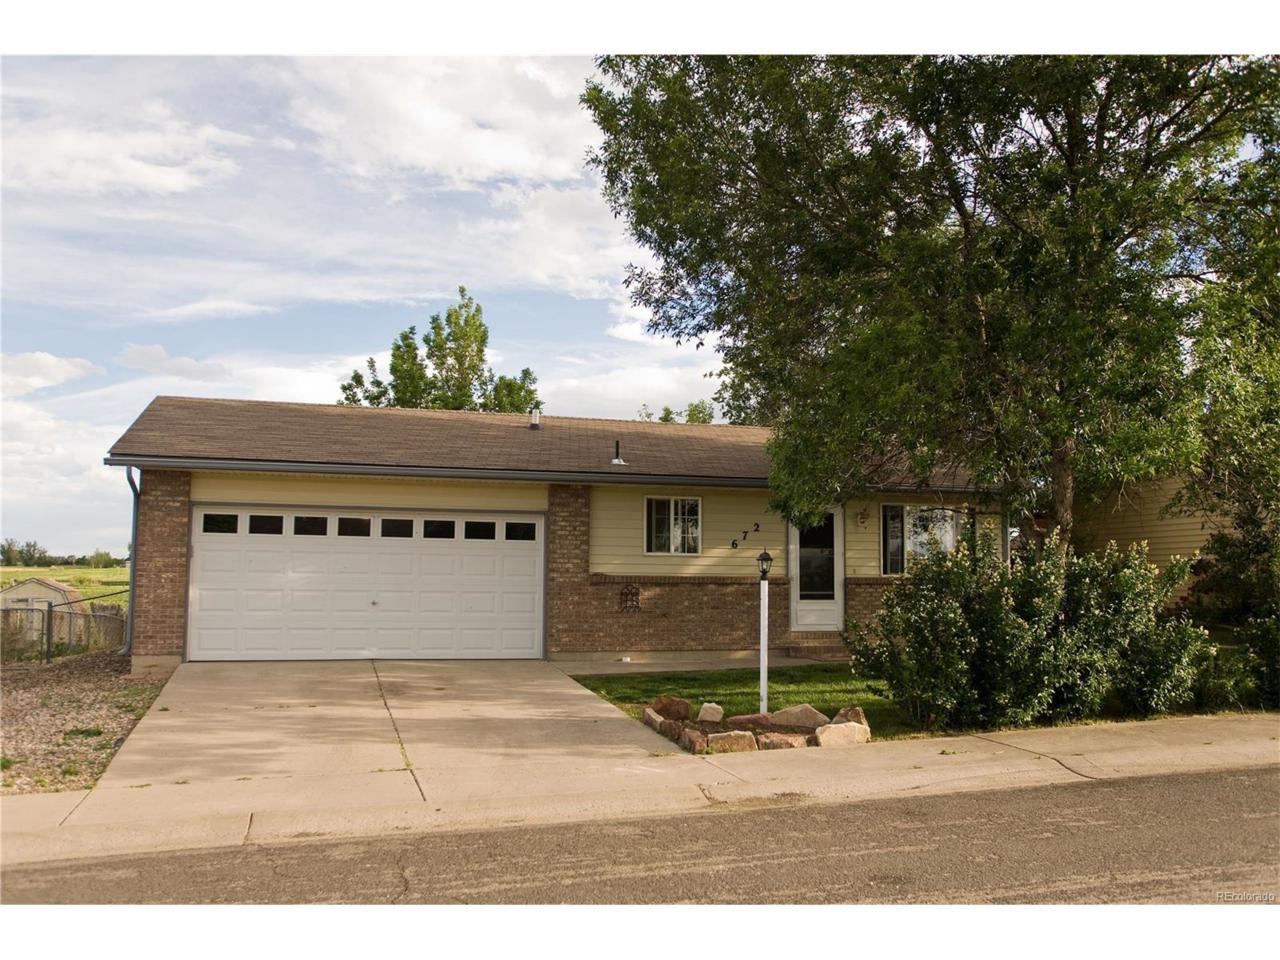 672 26th Street, Loveland, CO 80537 (MLS #3333178) :: 8z Real Estate